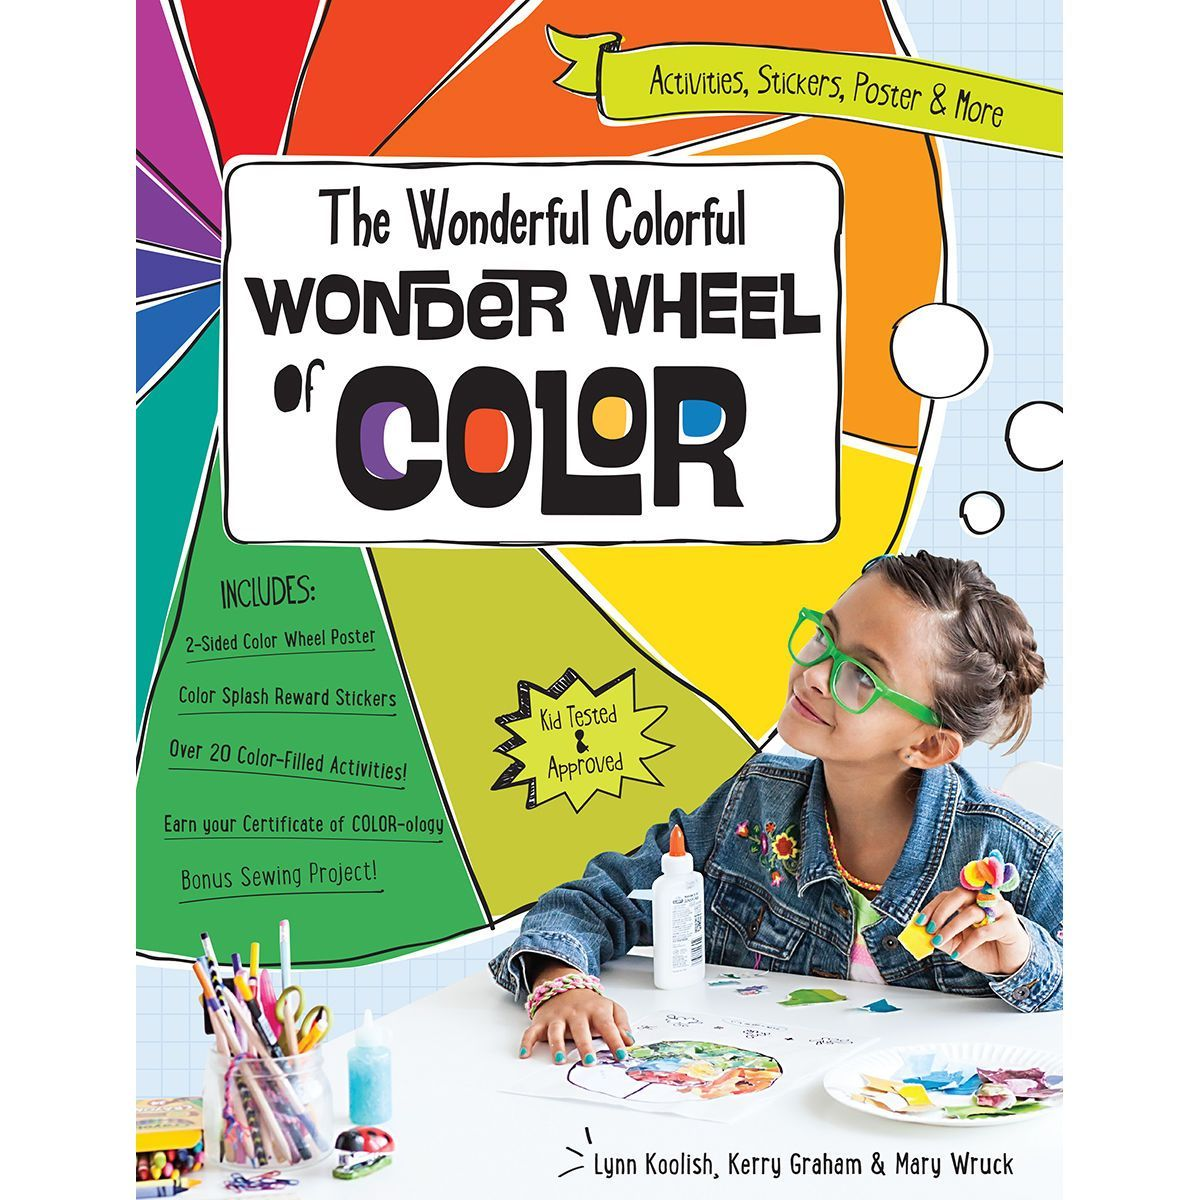 How to use a color wheel for decorating - Kids Will Learn How To Create Mix And Match Color To Use In Crafting